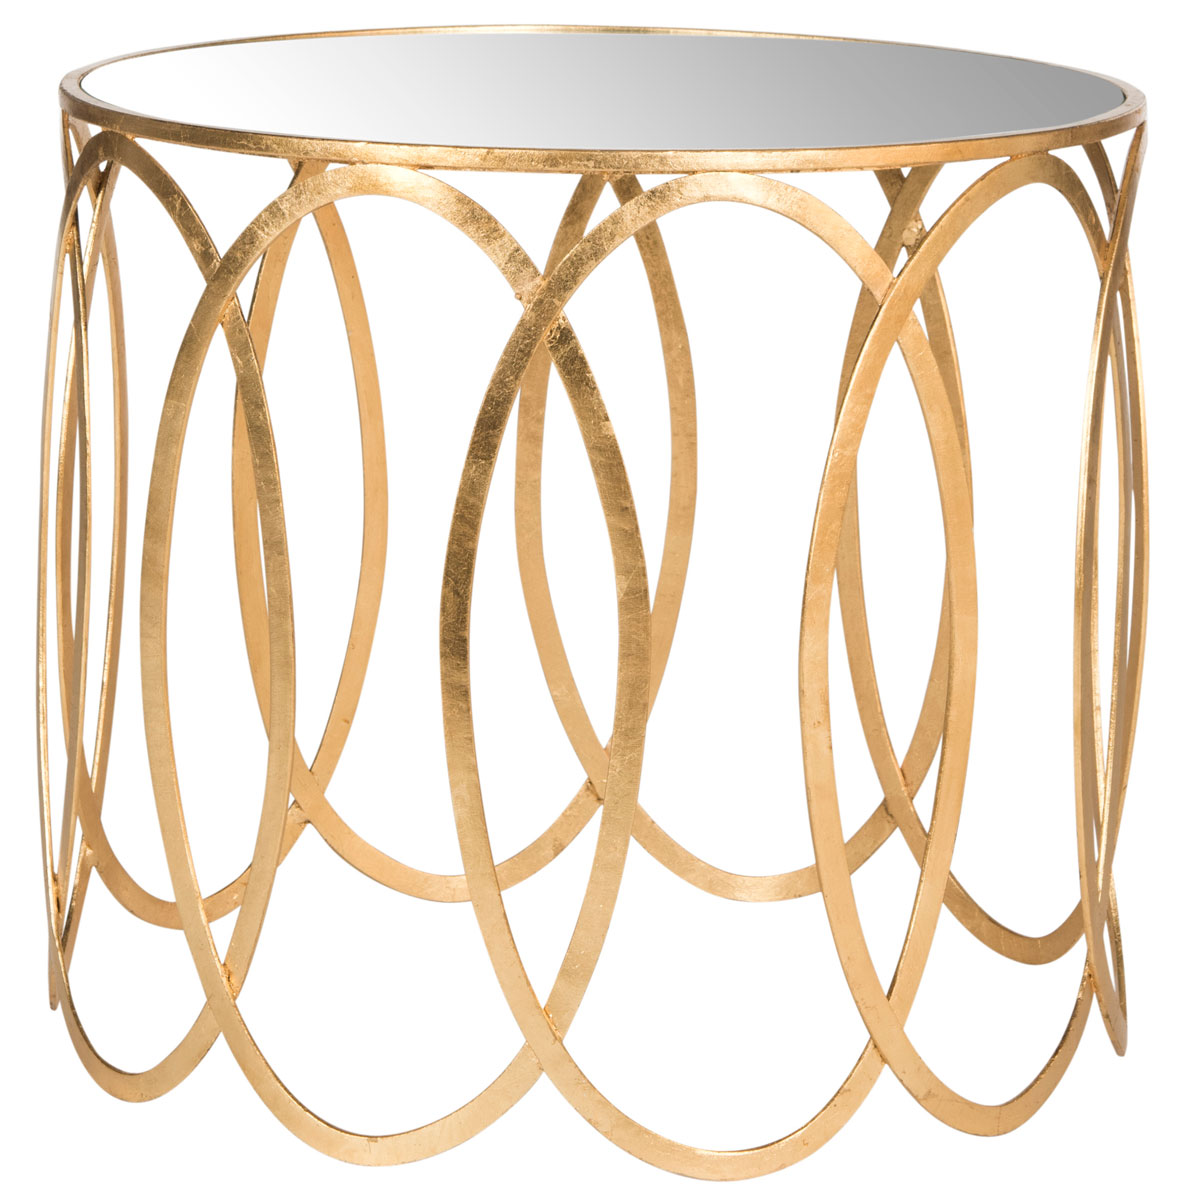 gold accent table end tables safavieh front metal product details cherry dining room usb extendable farmhouse small marble dark grey side vintage wood tier target brass and glass